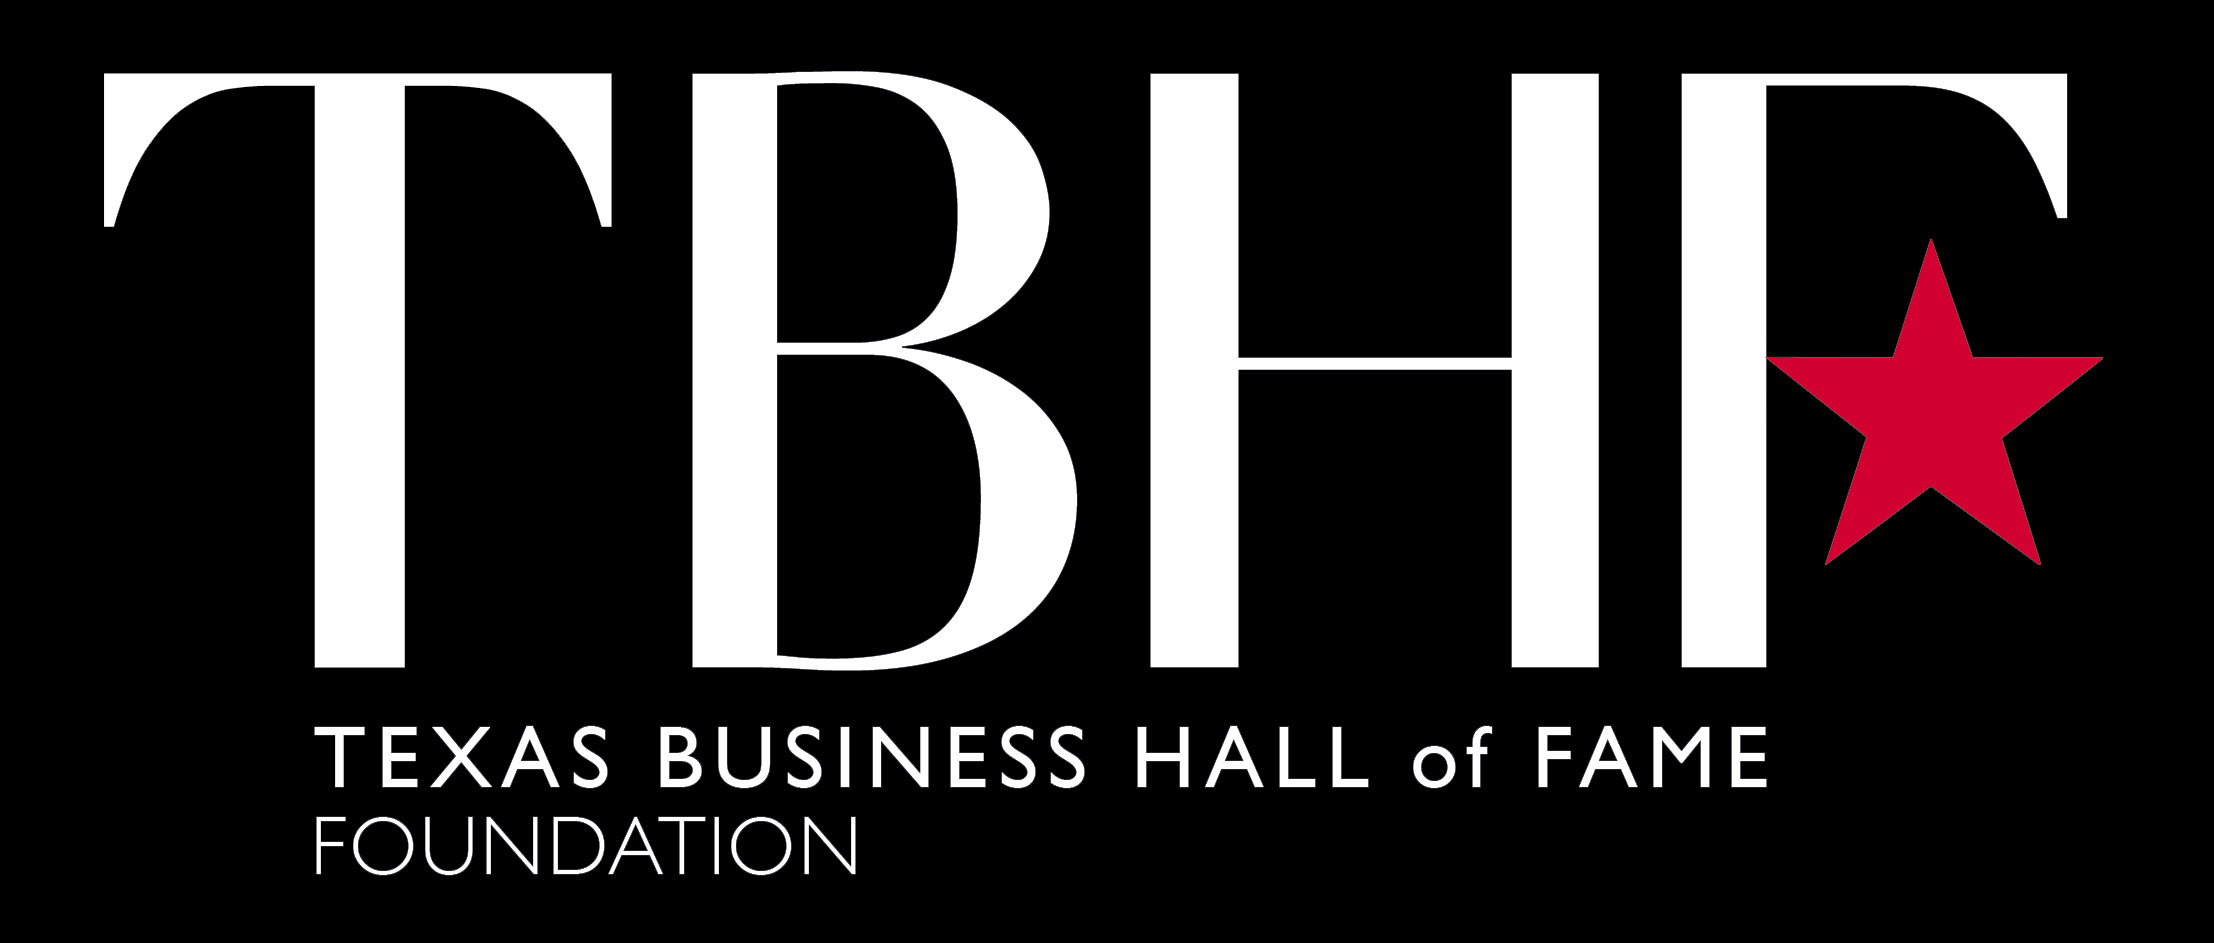 Texas Business Hall of Fame